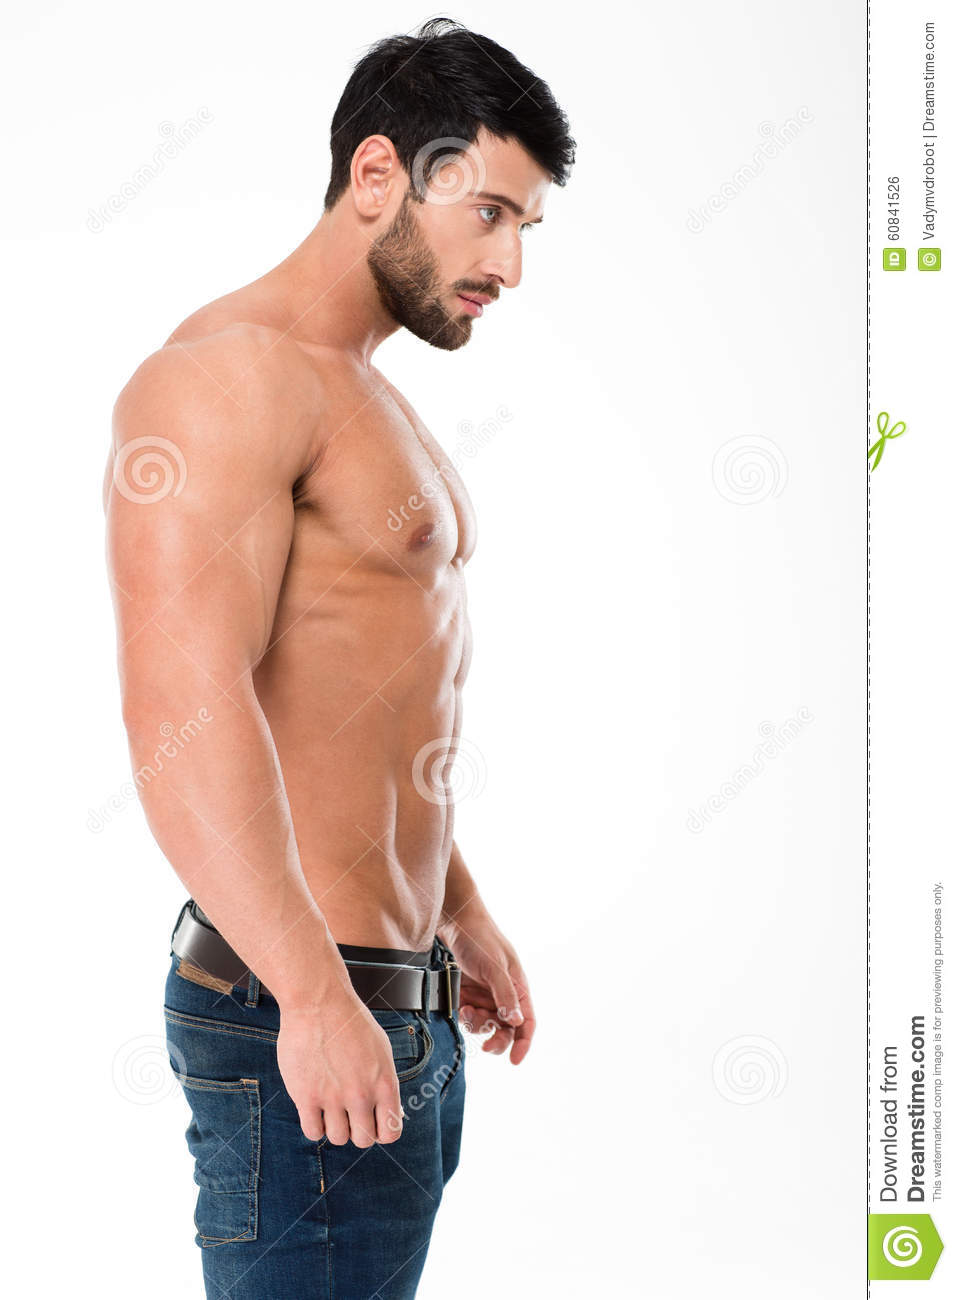 Handsome Man With Muscular Body Stock Photo Image Of Chest